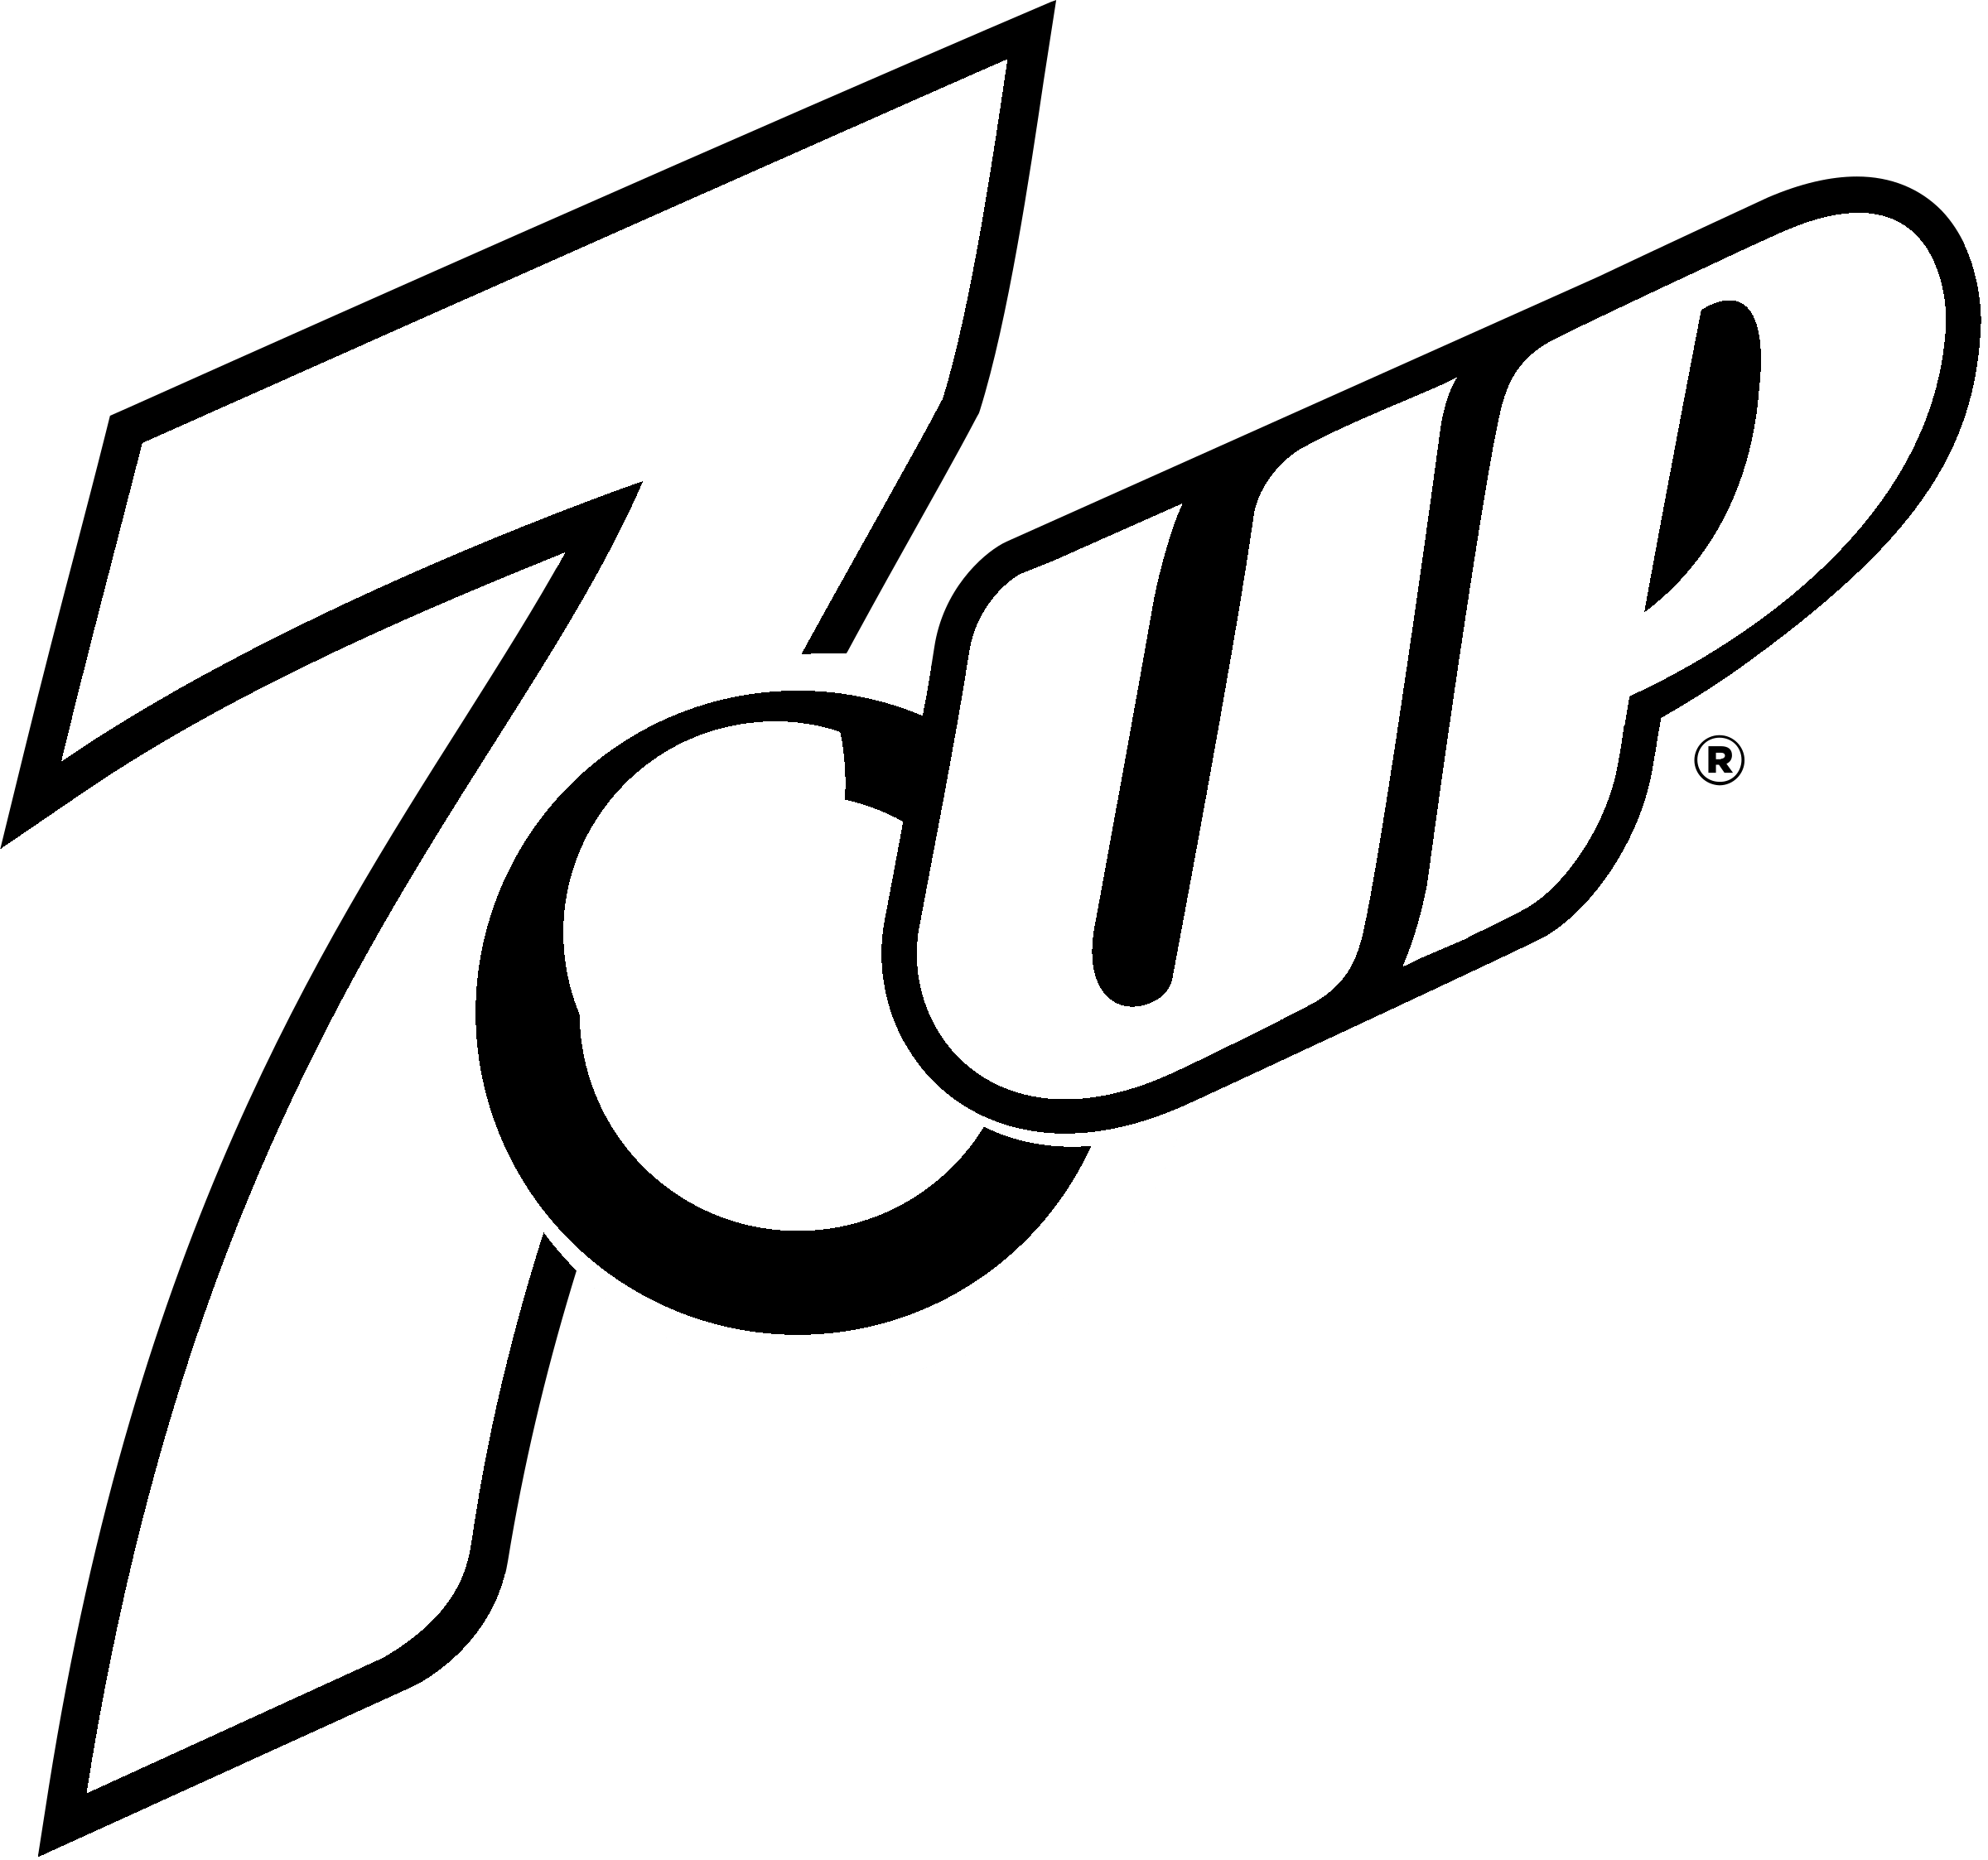 7UP Logo PNG Transparent & SVG Vector - Freebie Supply clipart royalty free